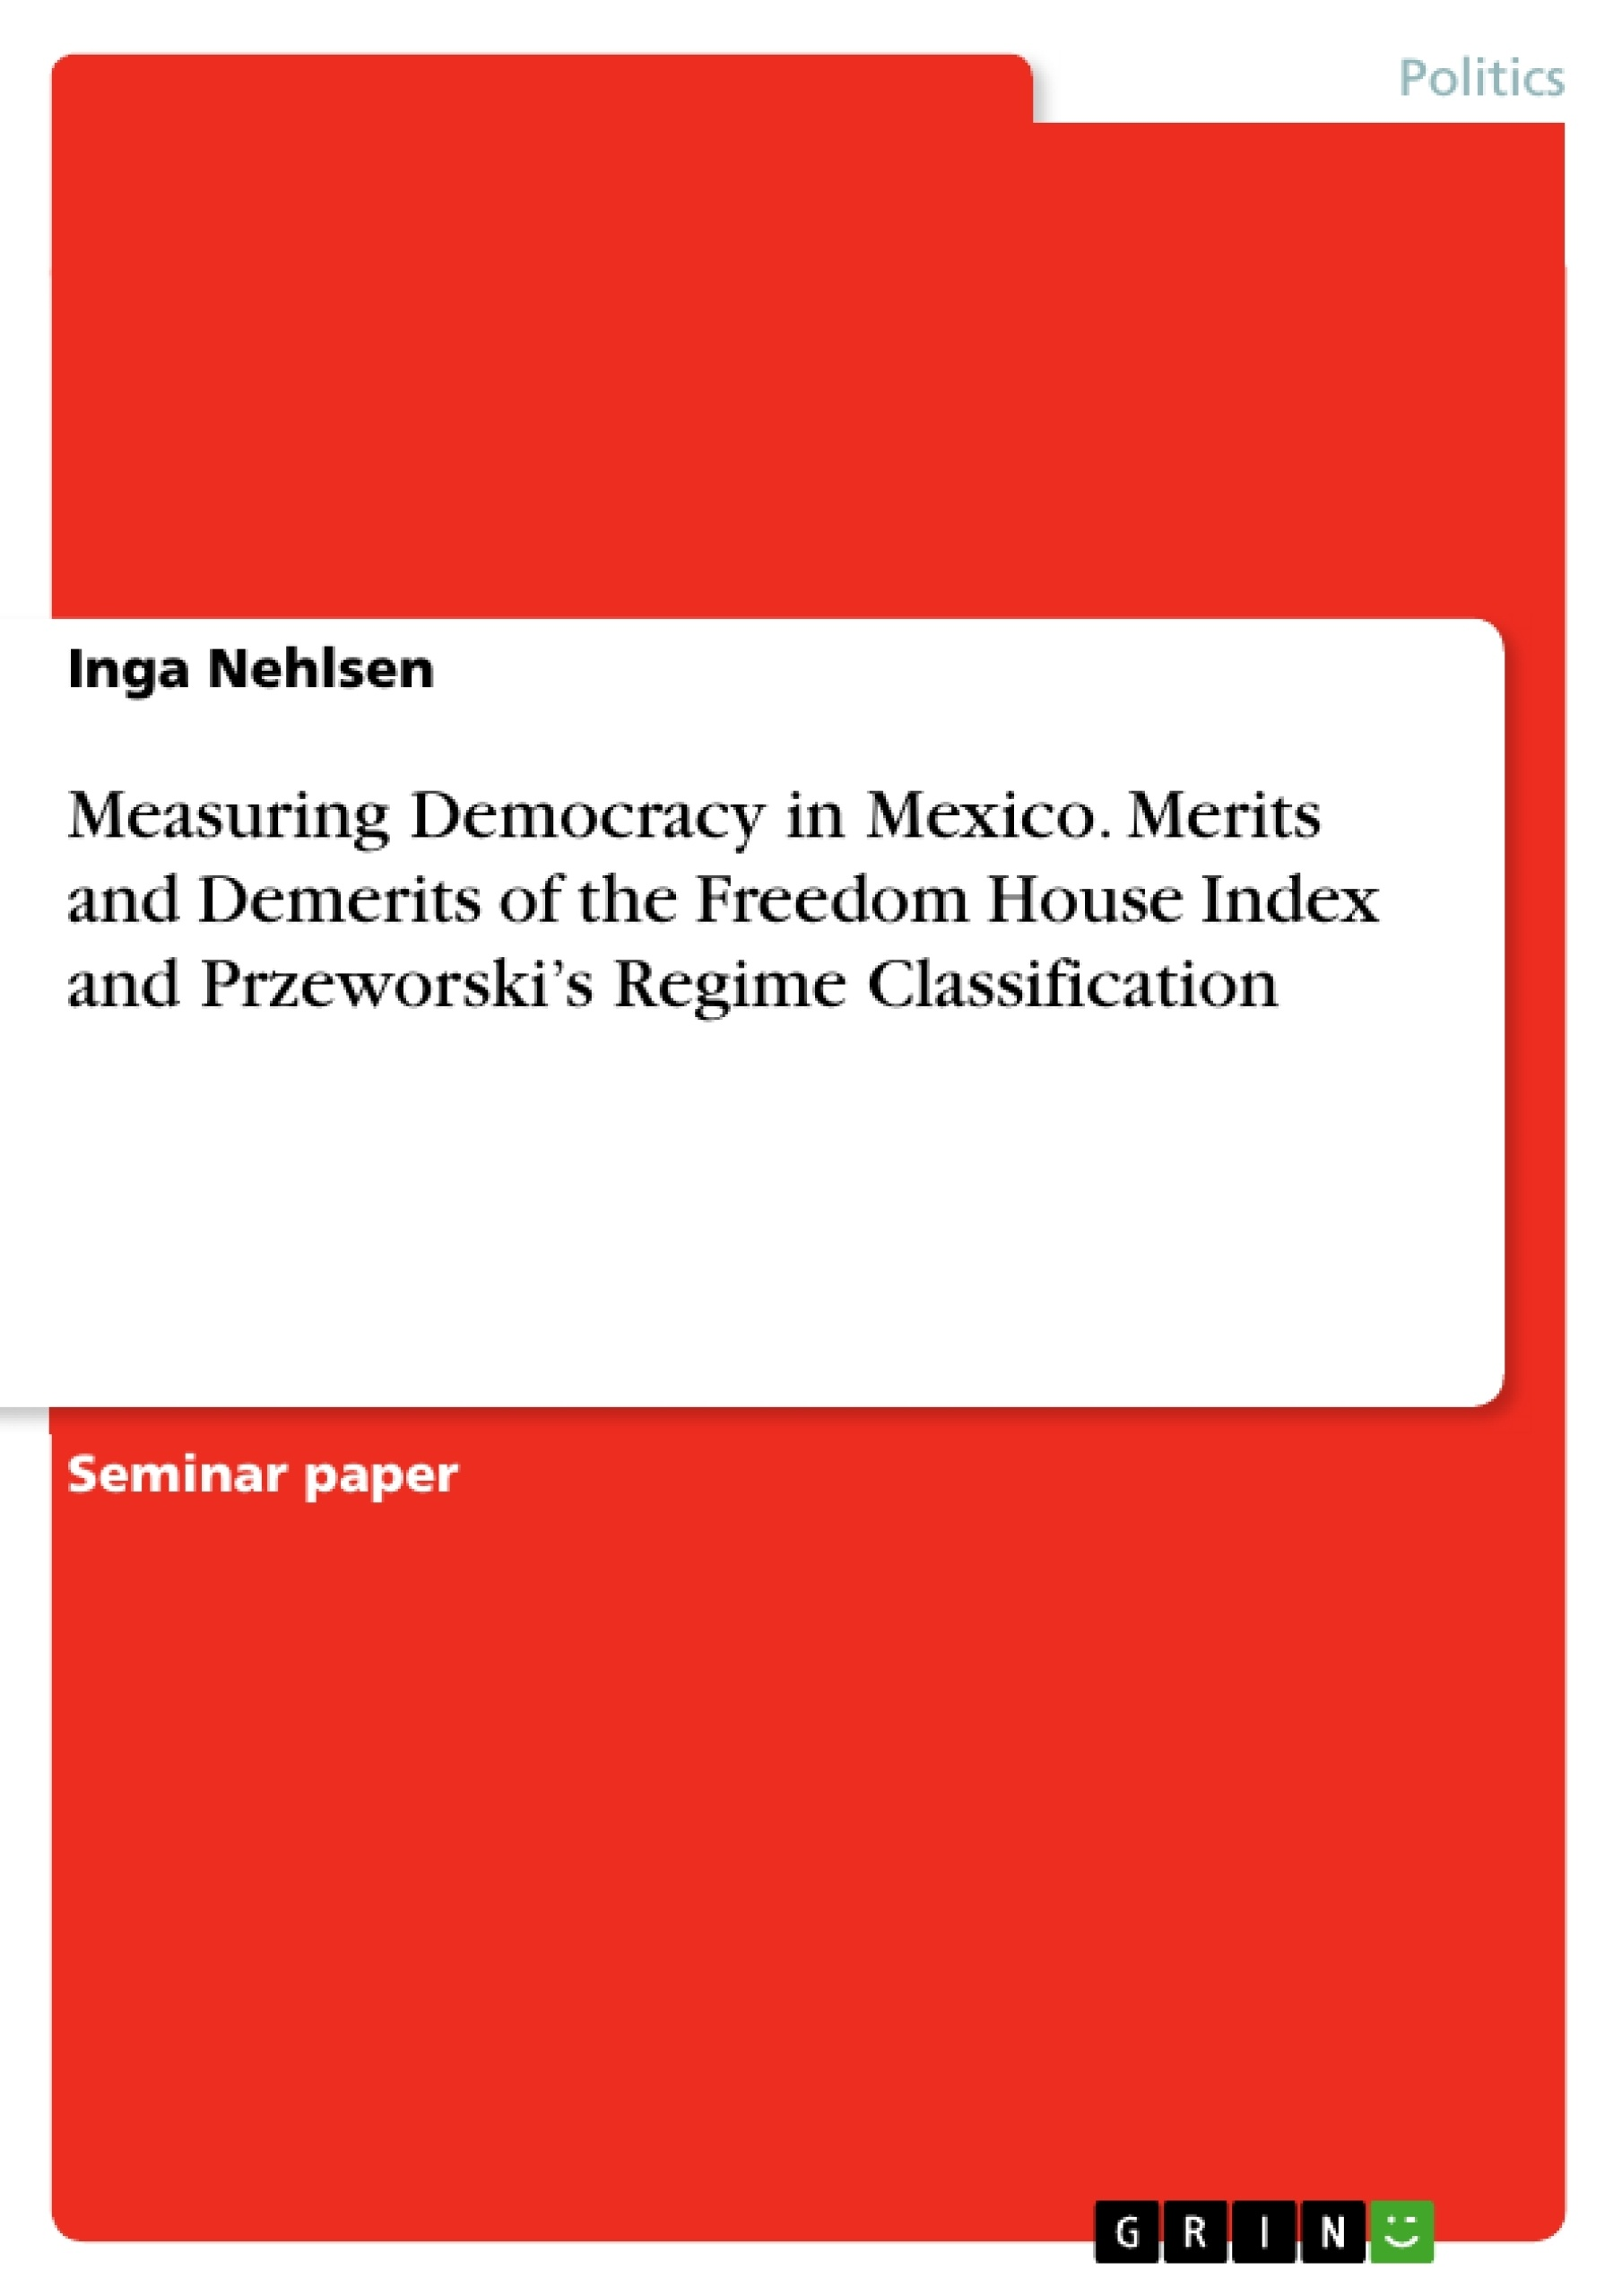 Title: Measuring Democracy in Mexico. Merits and Demerits of the Freedom House Index and Przeworski's Regime Classification